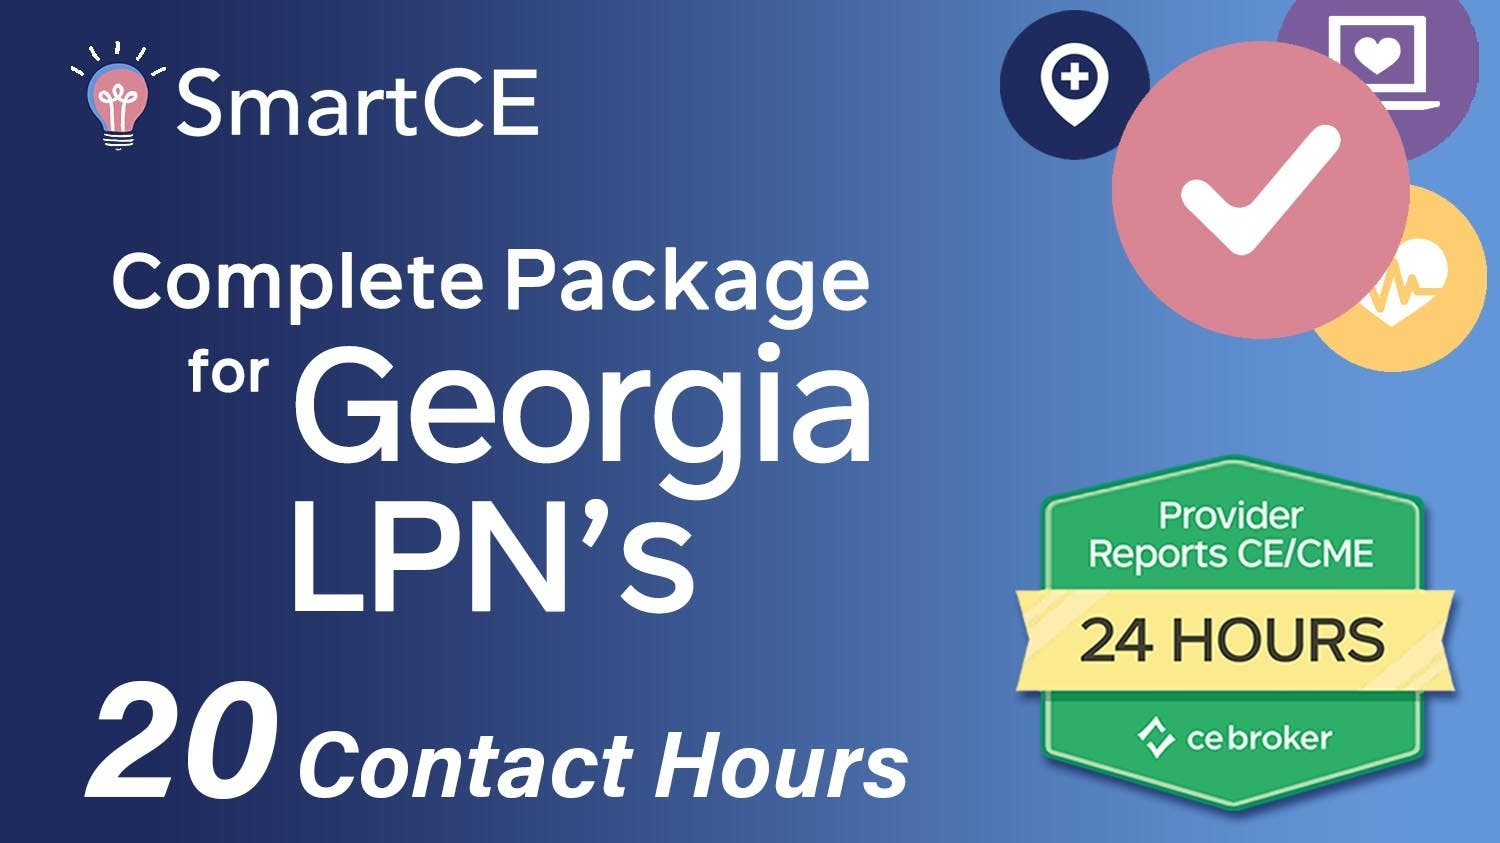 GA LPN - Complete CE Renewal Package: 20 Contact Hours /20-619940/20-605536/20-581325/20-581337/20-581291/20-577091/20-605534